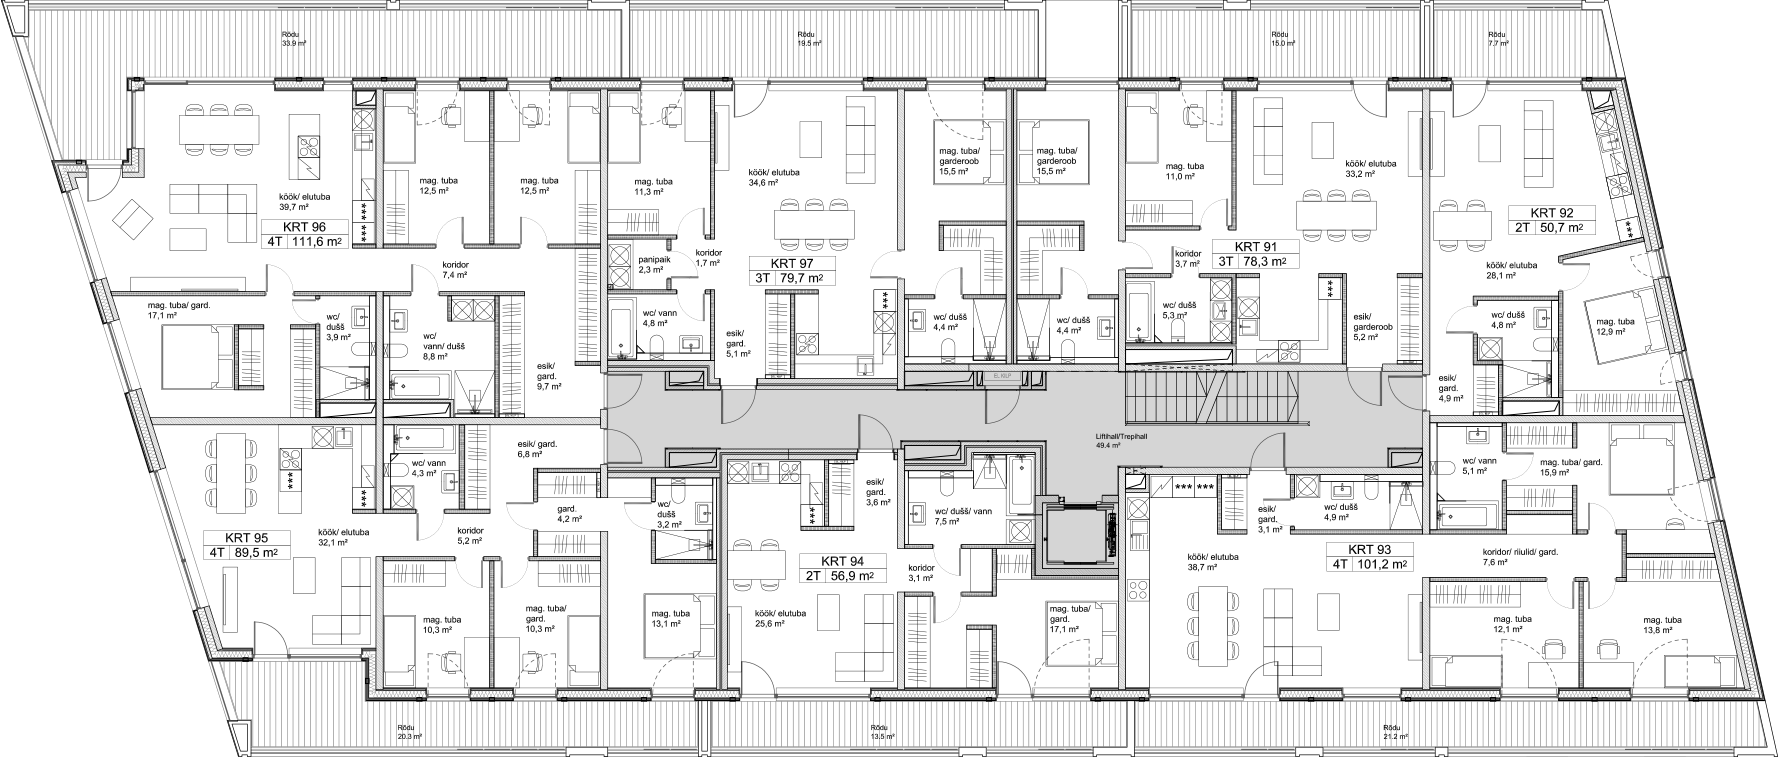 Floor 3 plan of Kiikri Apartment House C